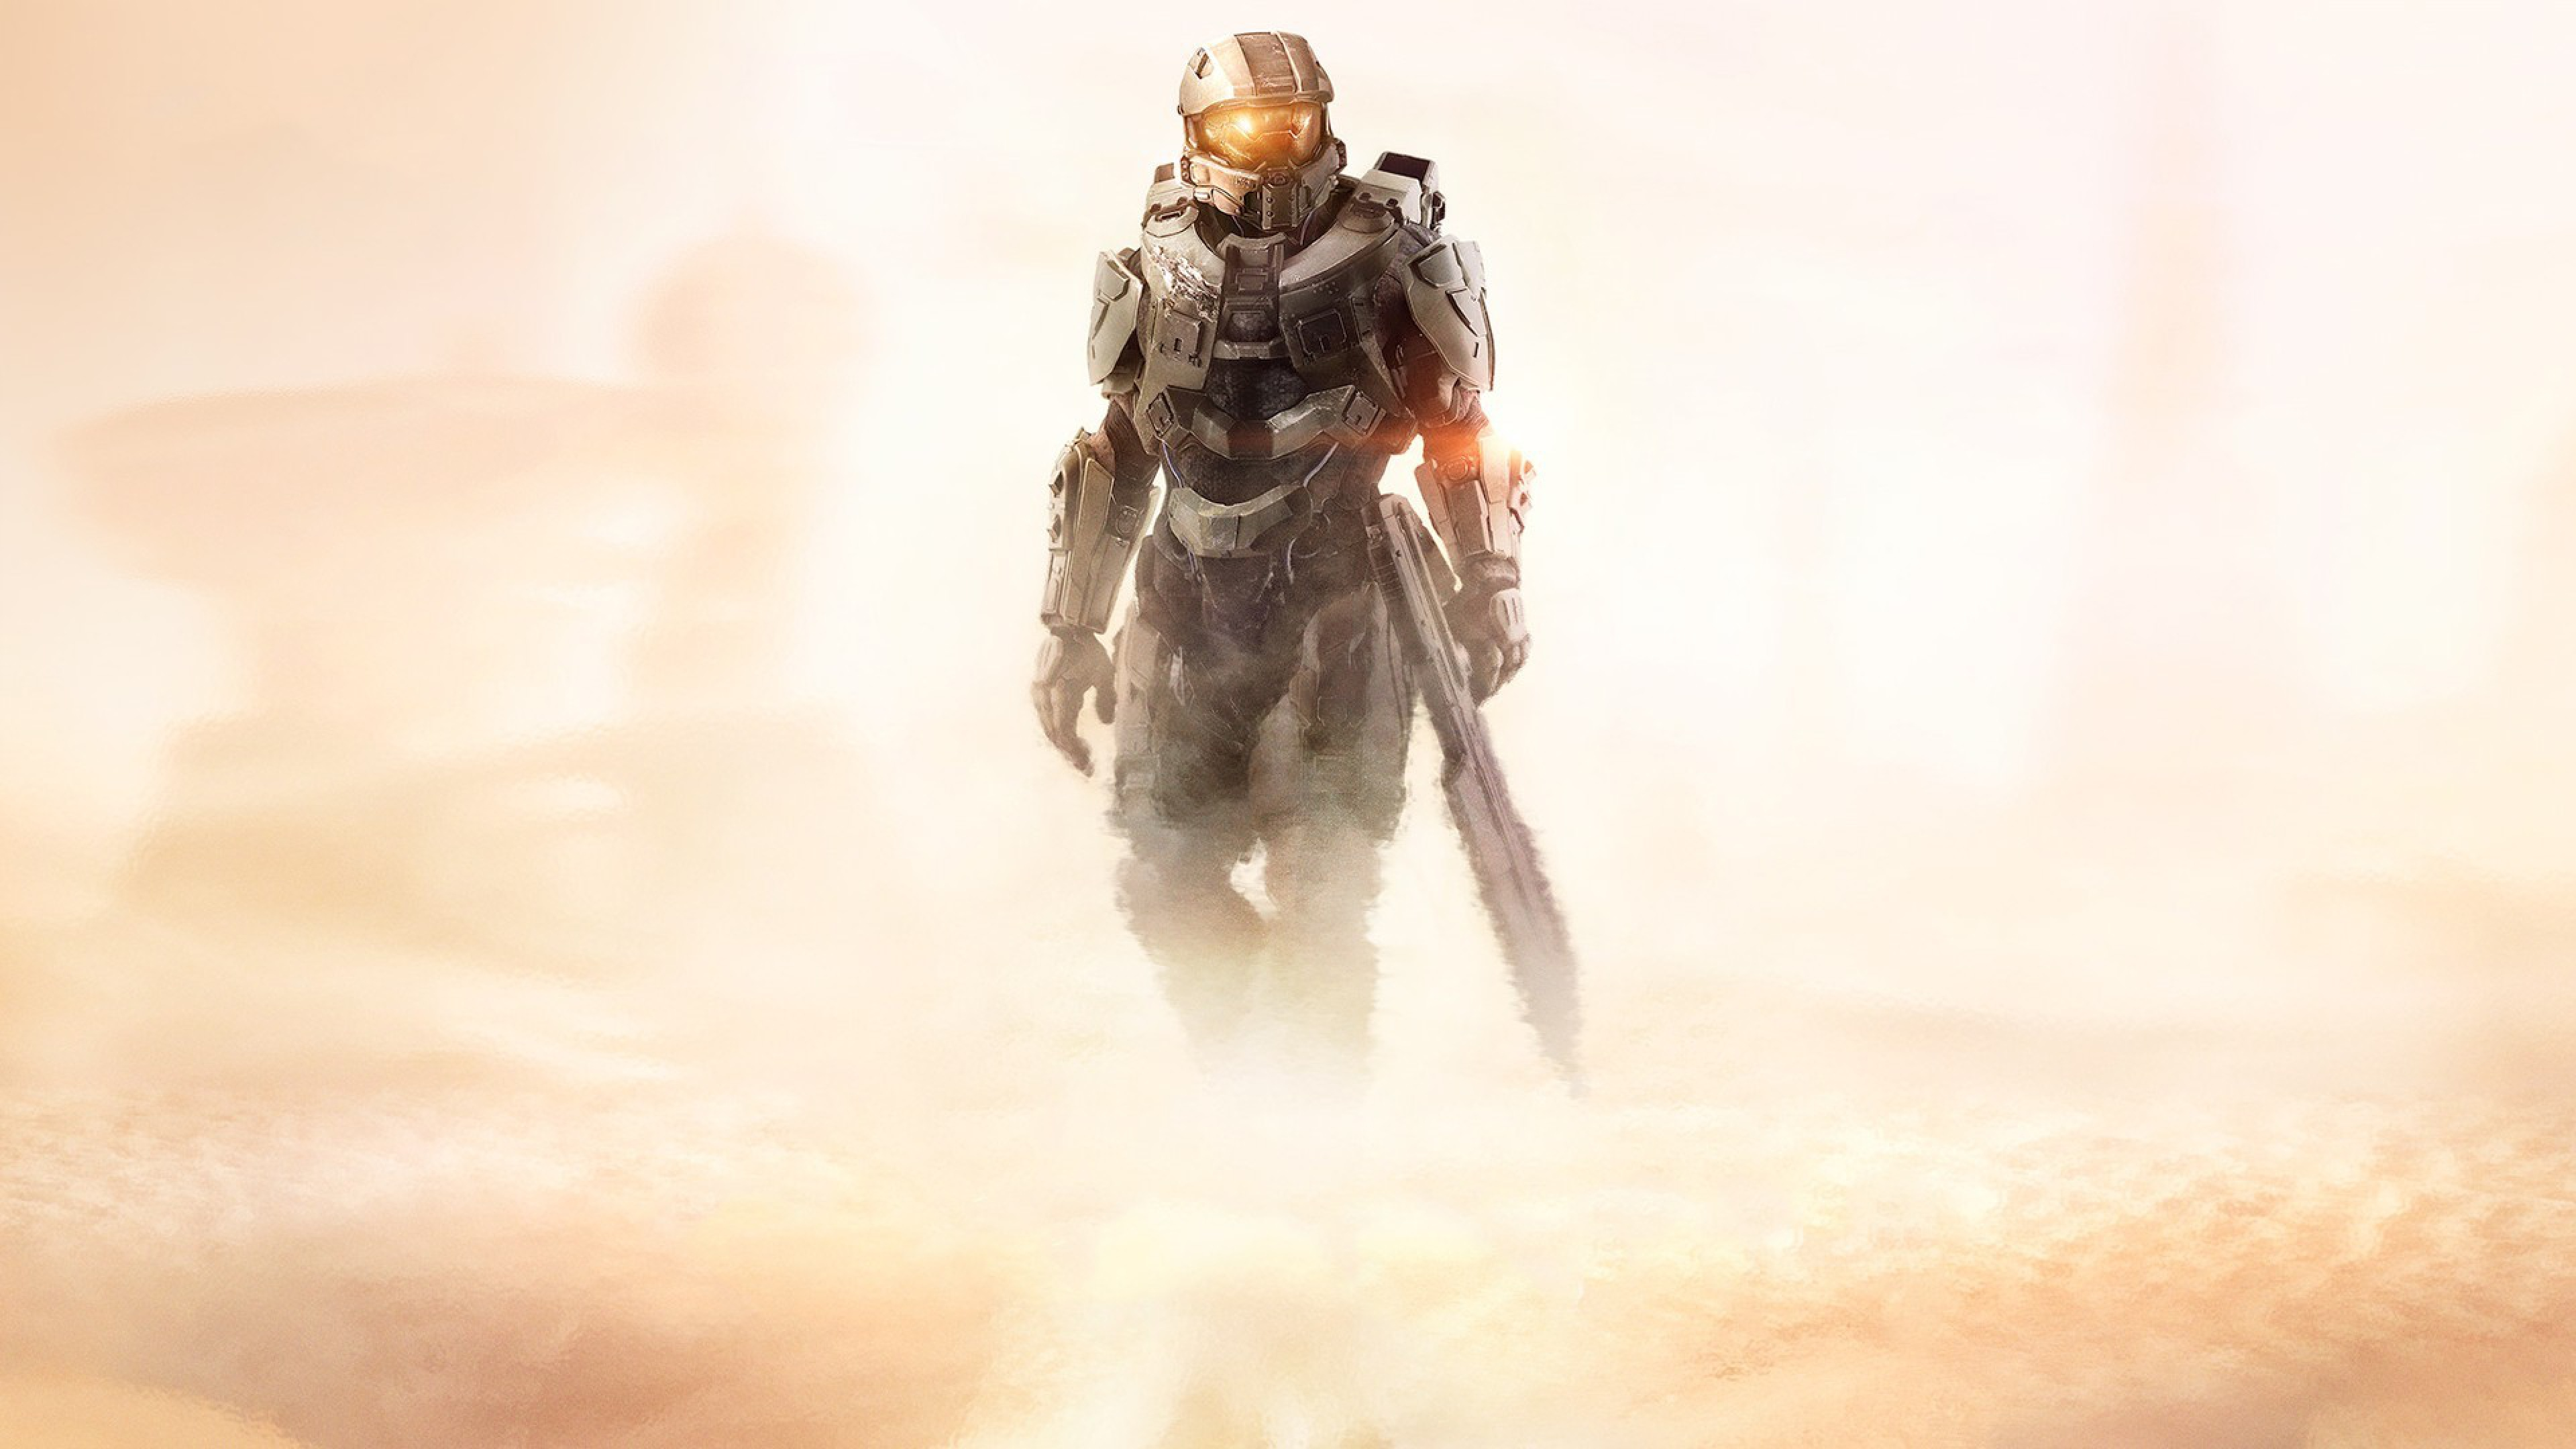 Halo 5 Guardians Master Chief John Halo Game Desert WallpapersByte com 3840x2160